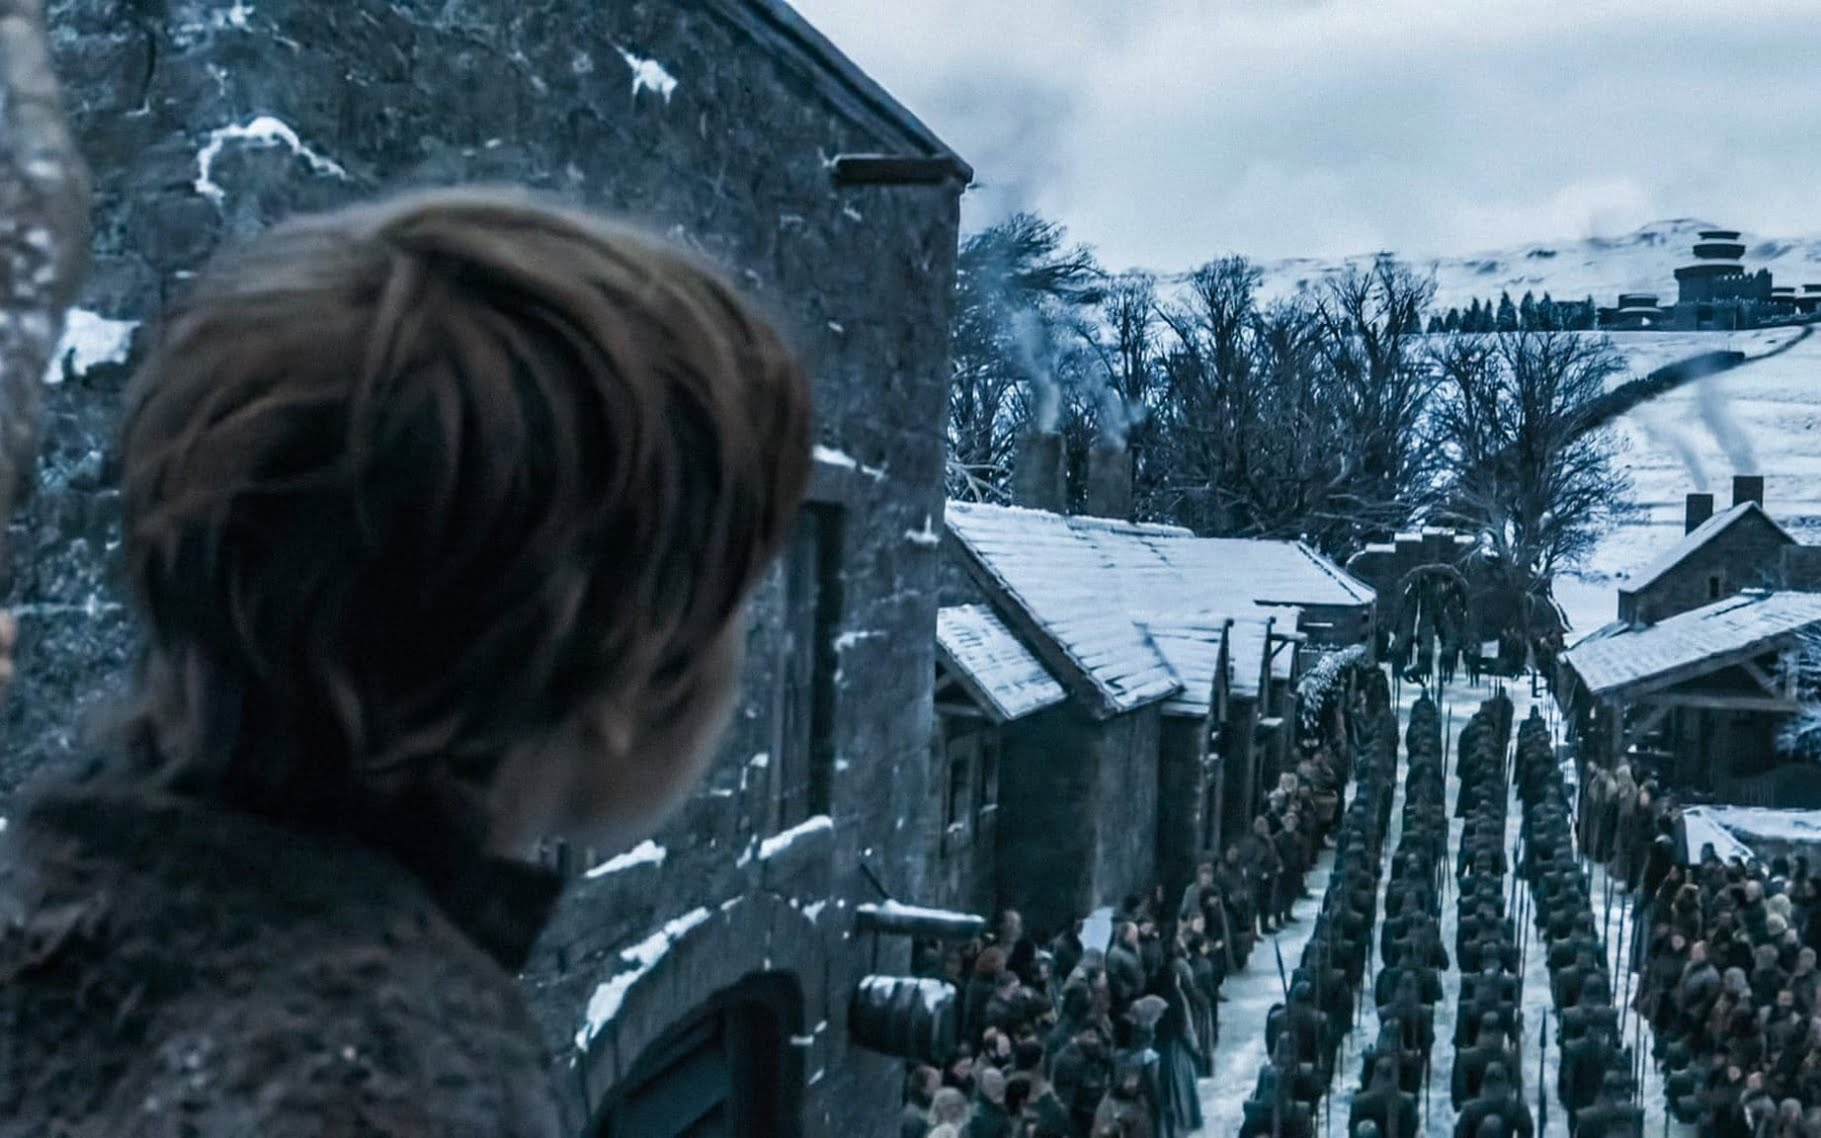 The troops gather at Winterfell - presumably, to wage war with the undead